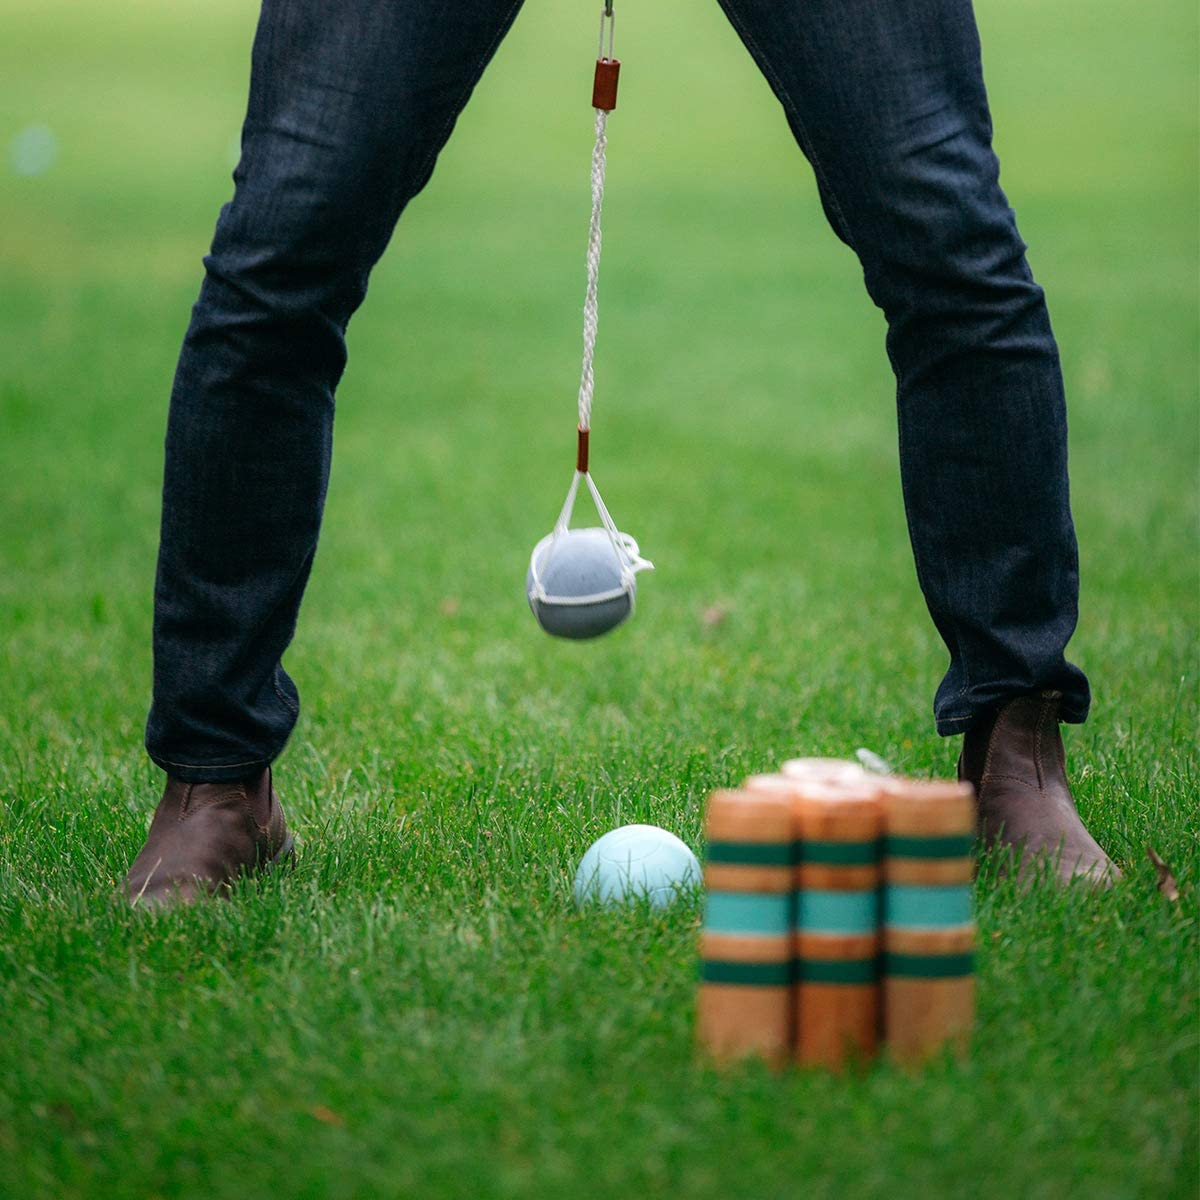 Includes Swinging Pendulum Waist Belt with Weighted Ball Lots of Laughs 6 Pins The Hilarious Hip Bowling Game or Wrecking Ball Game Premium Carrying Case Umali